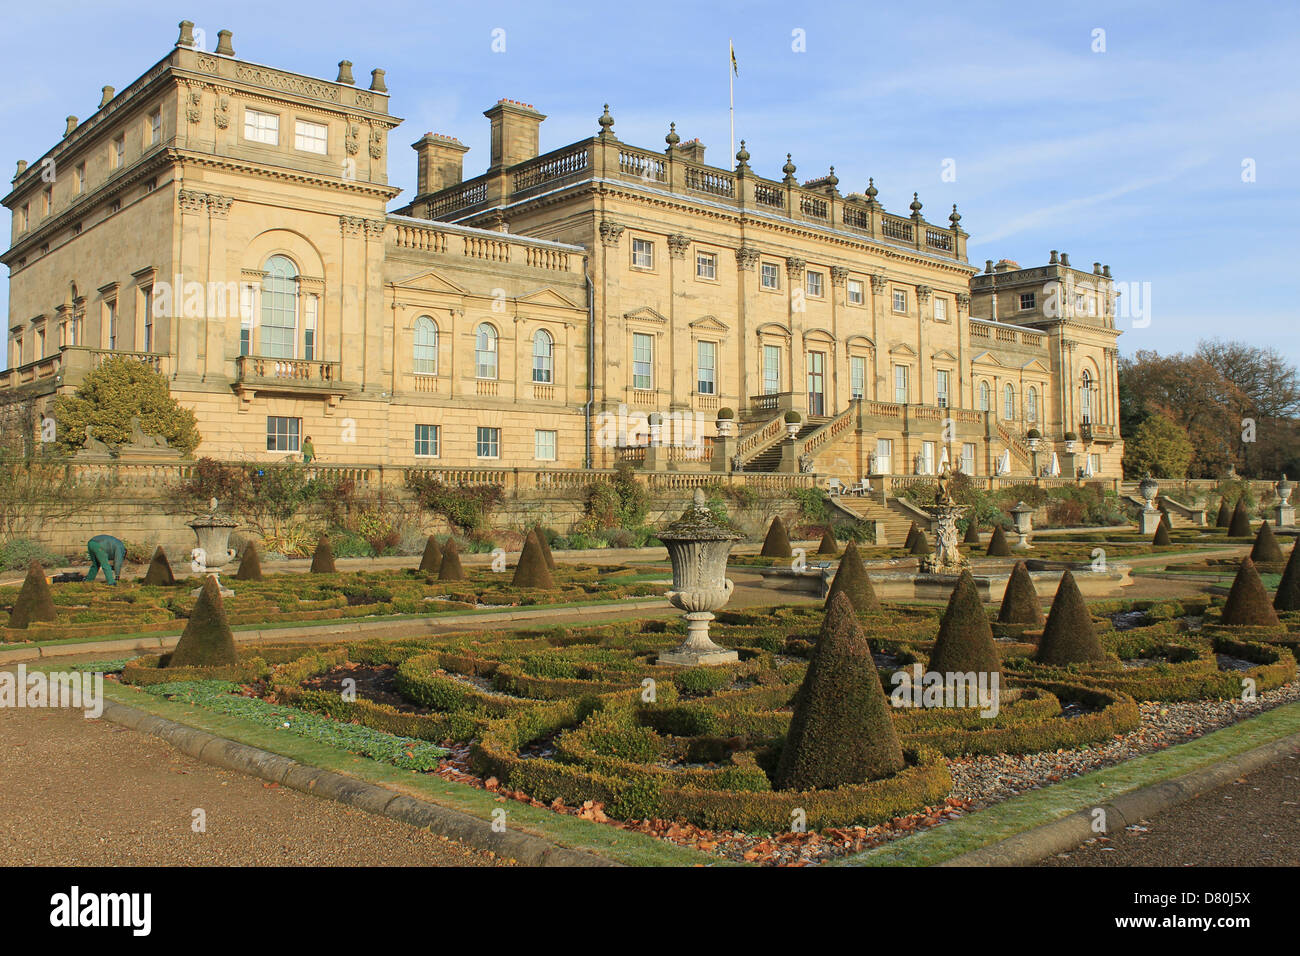 Formal garden and rear elevation of Harewood House, near Leeds, Yorkshire, UK - Stock Image